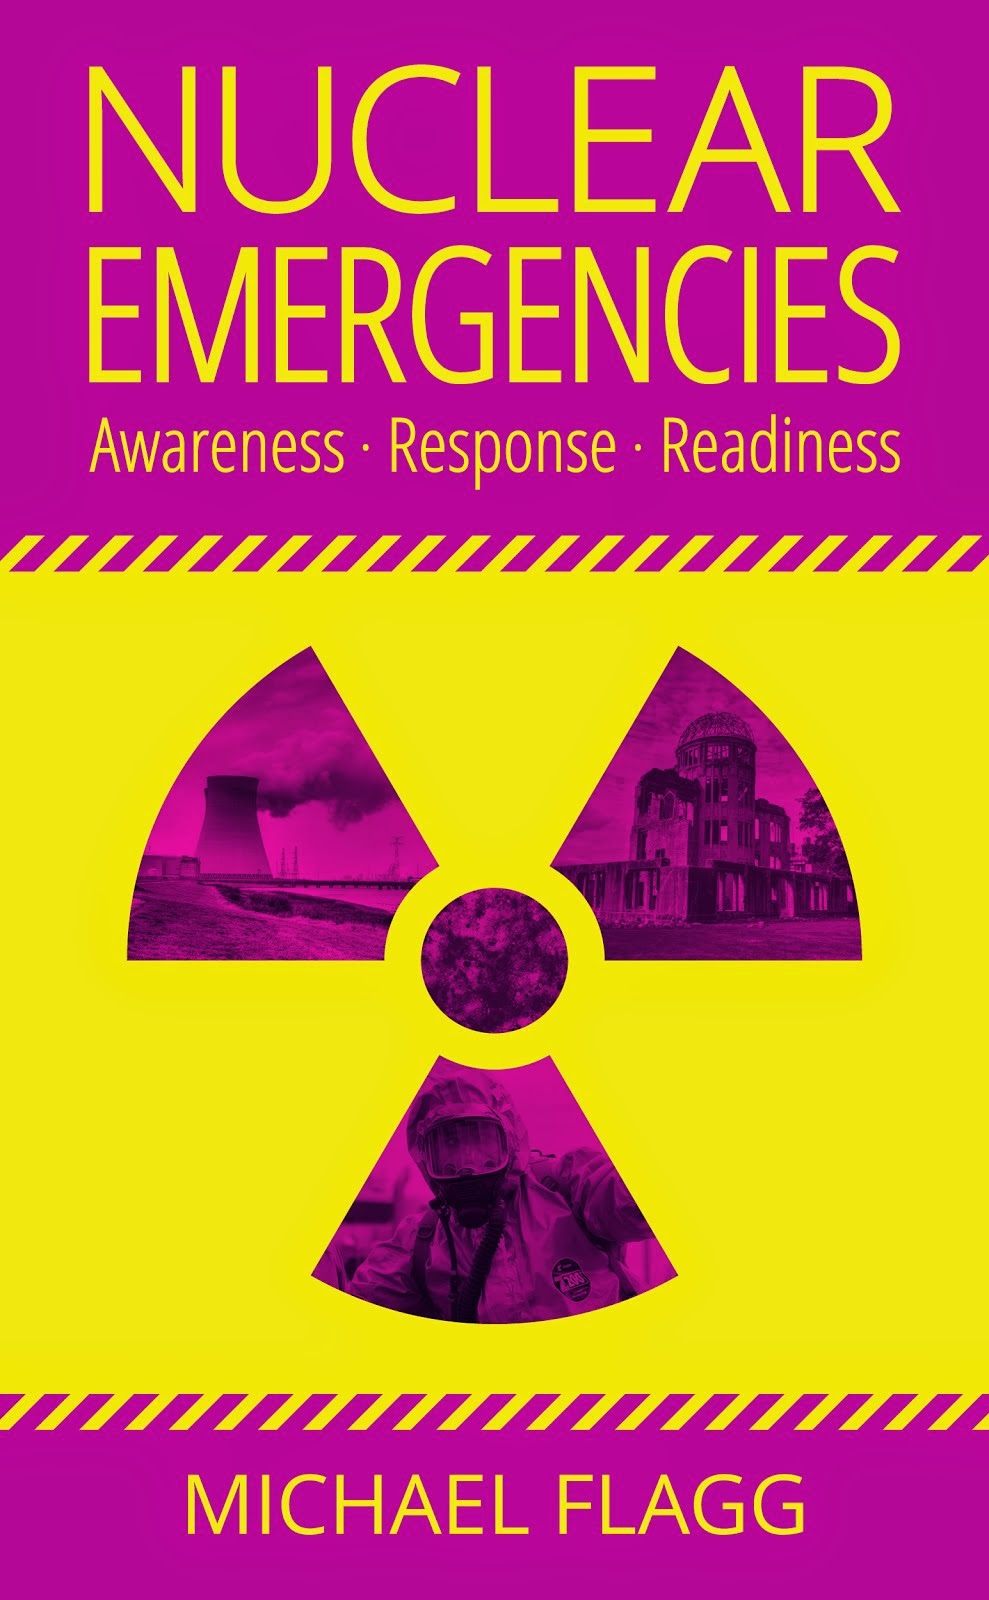 Nuclear Emergencies